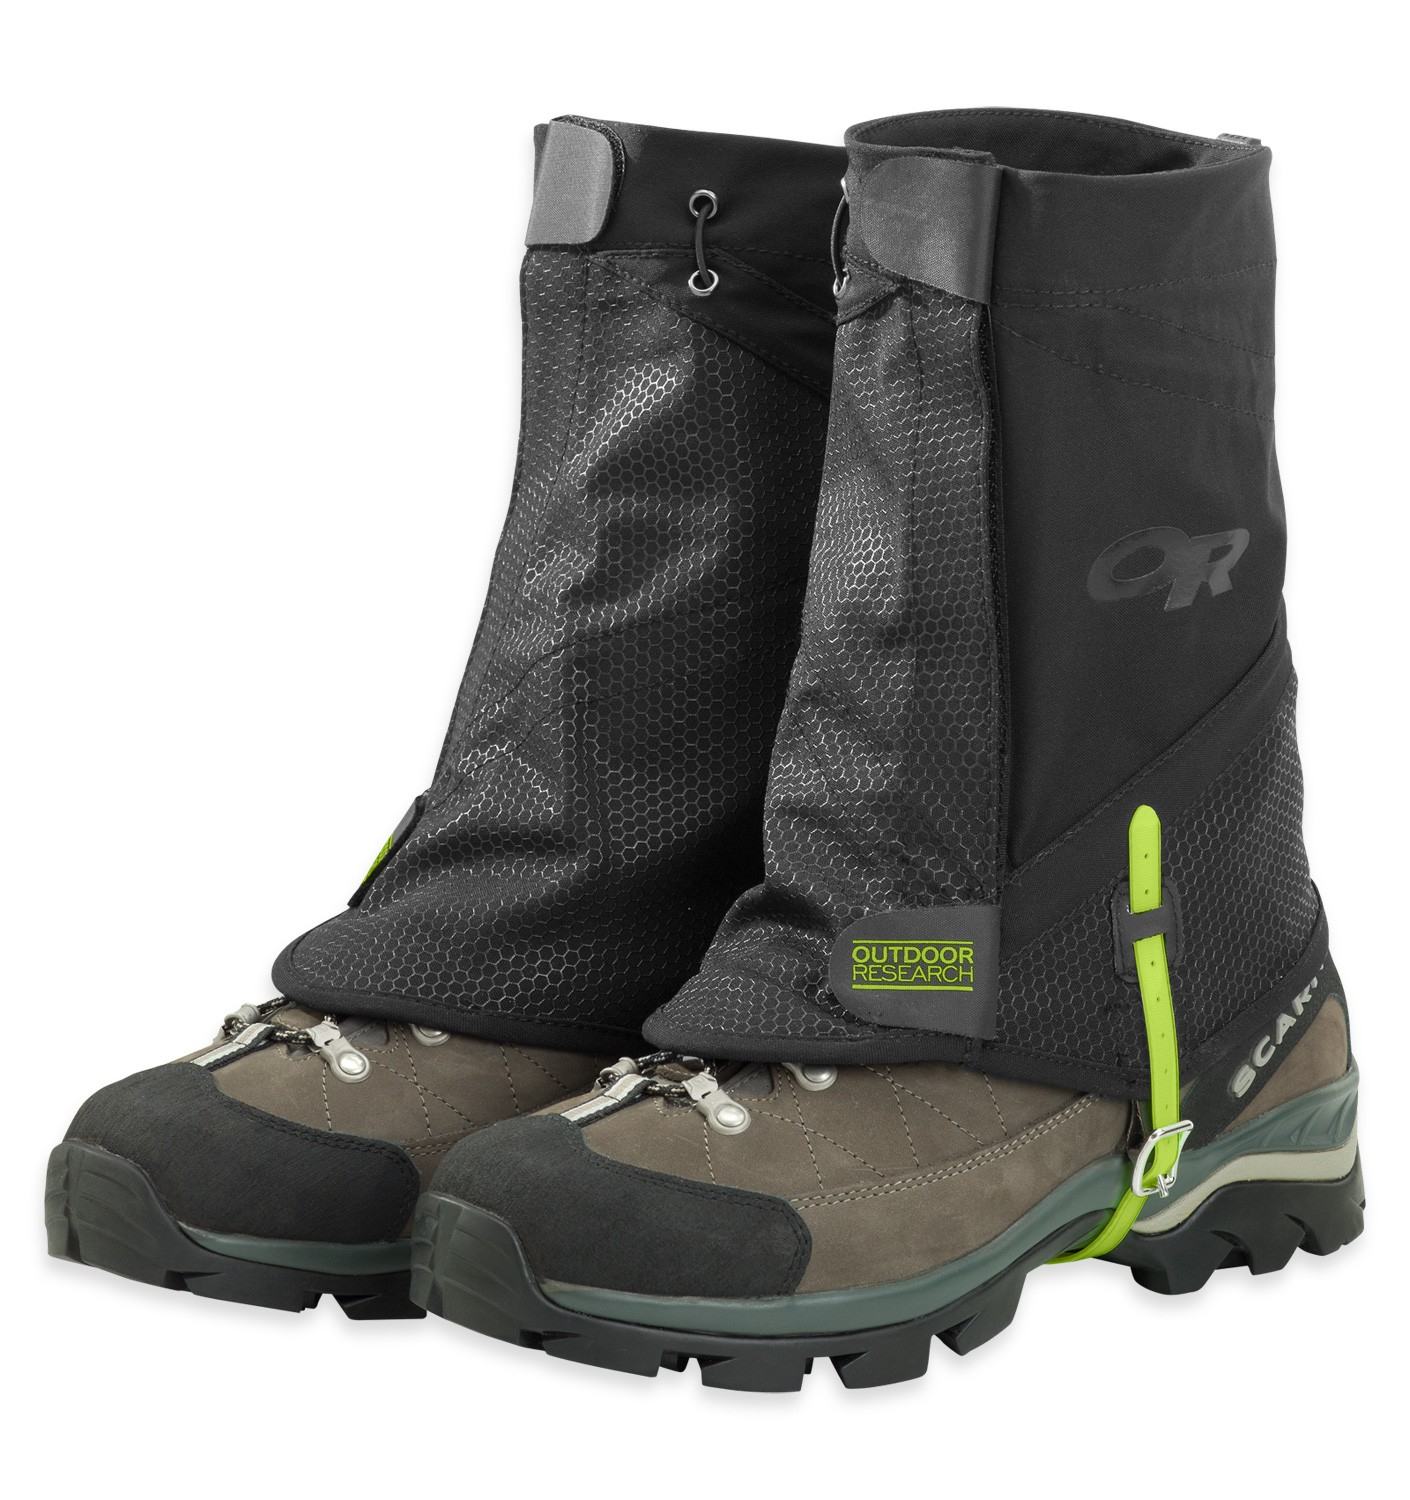 Gaiters to prevent snow from falling into the shoes.